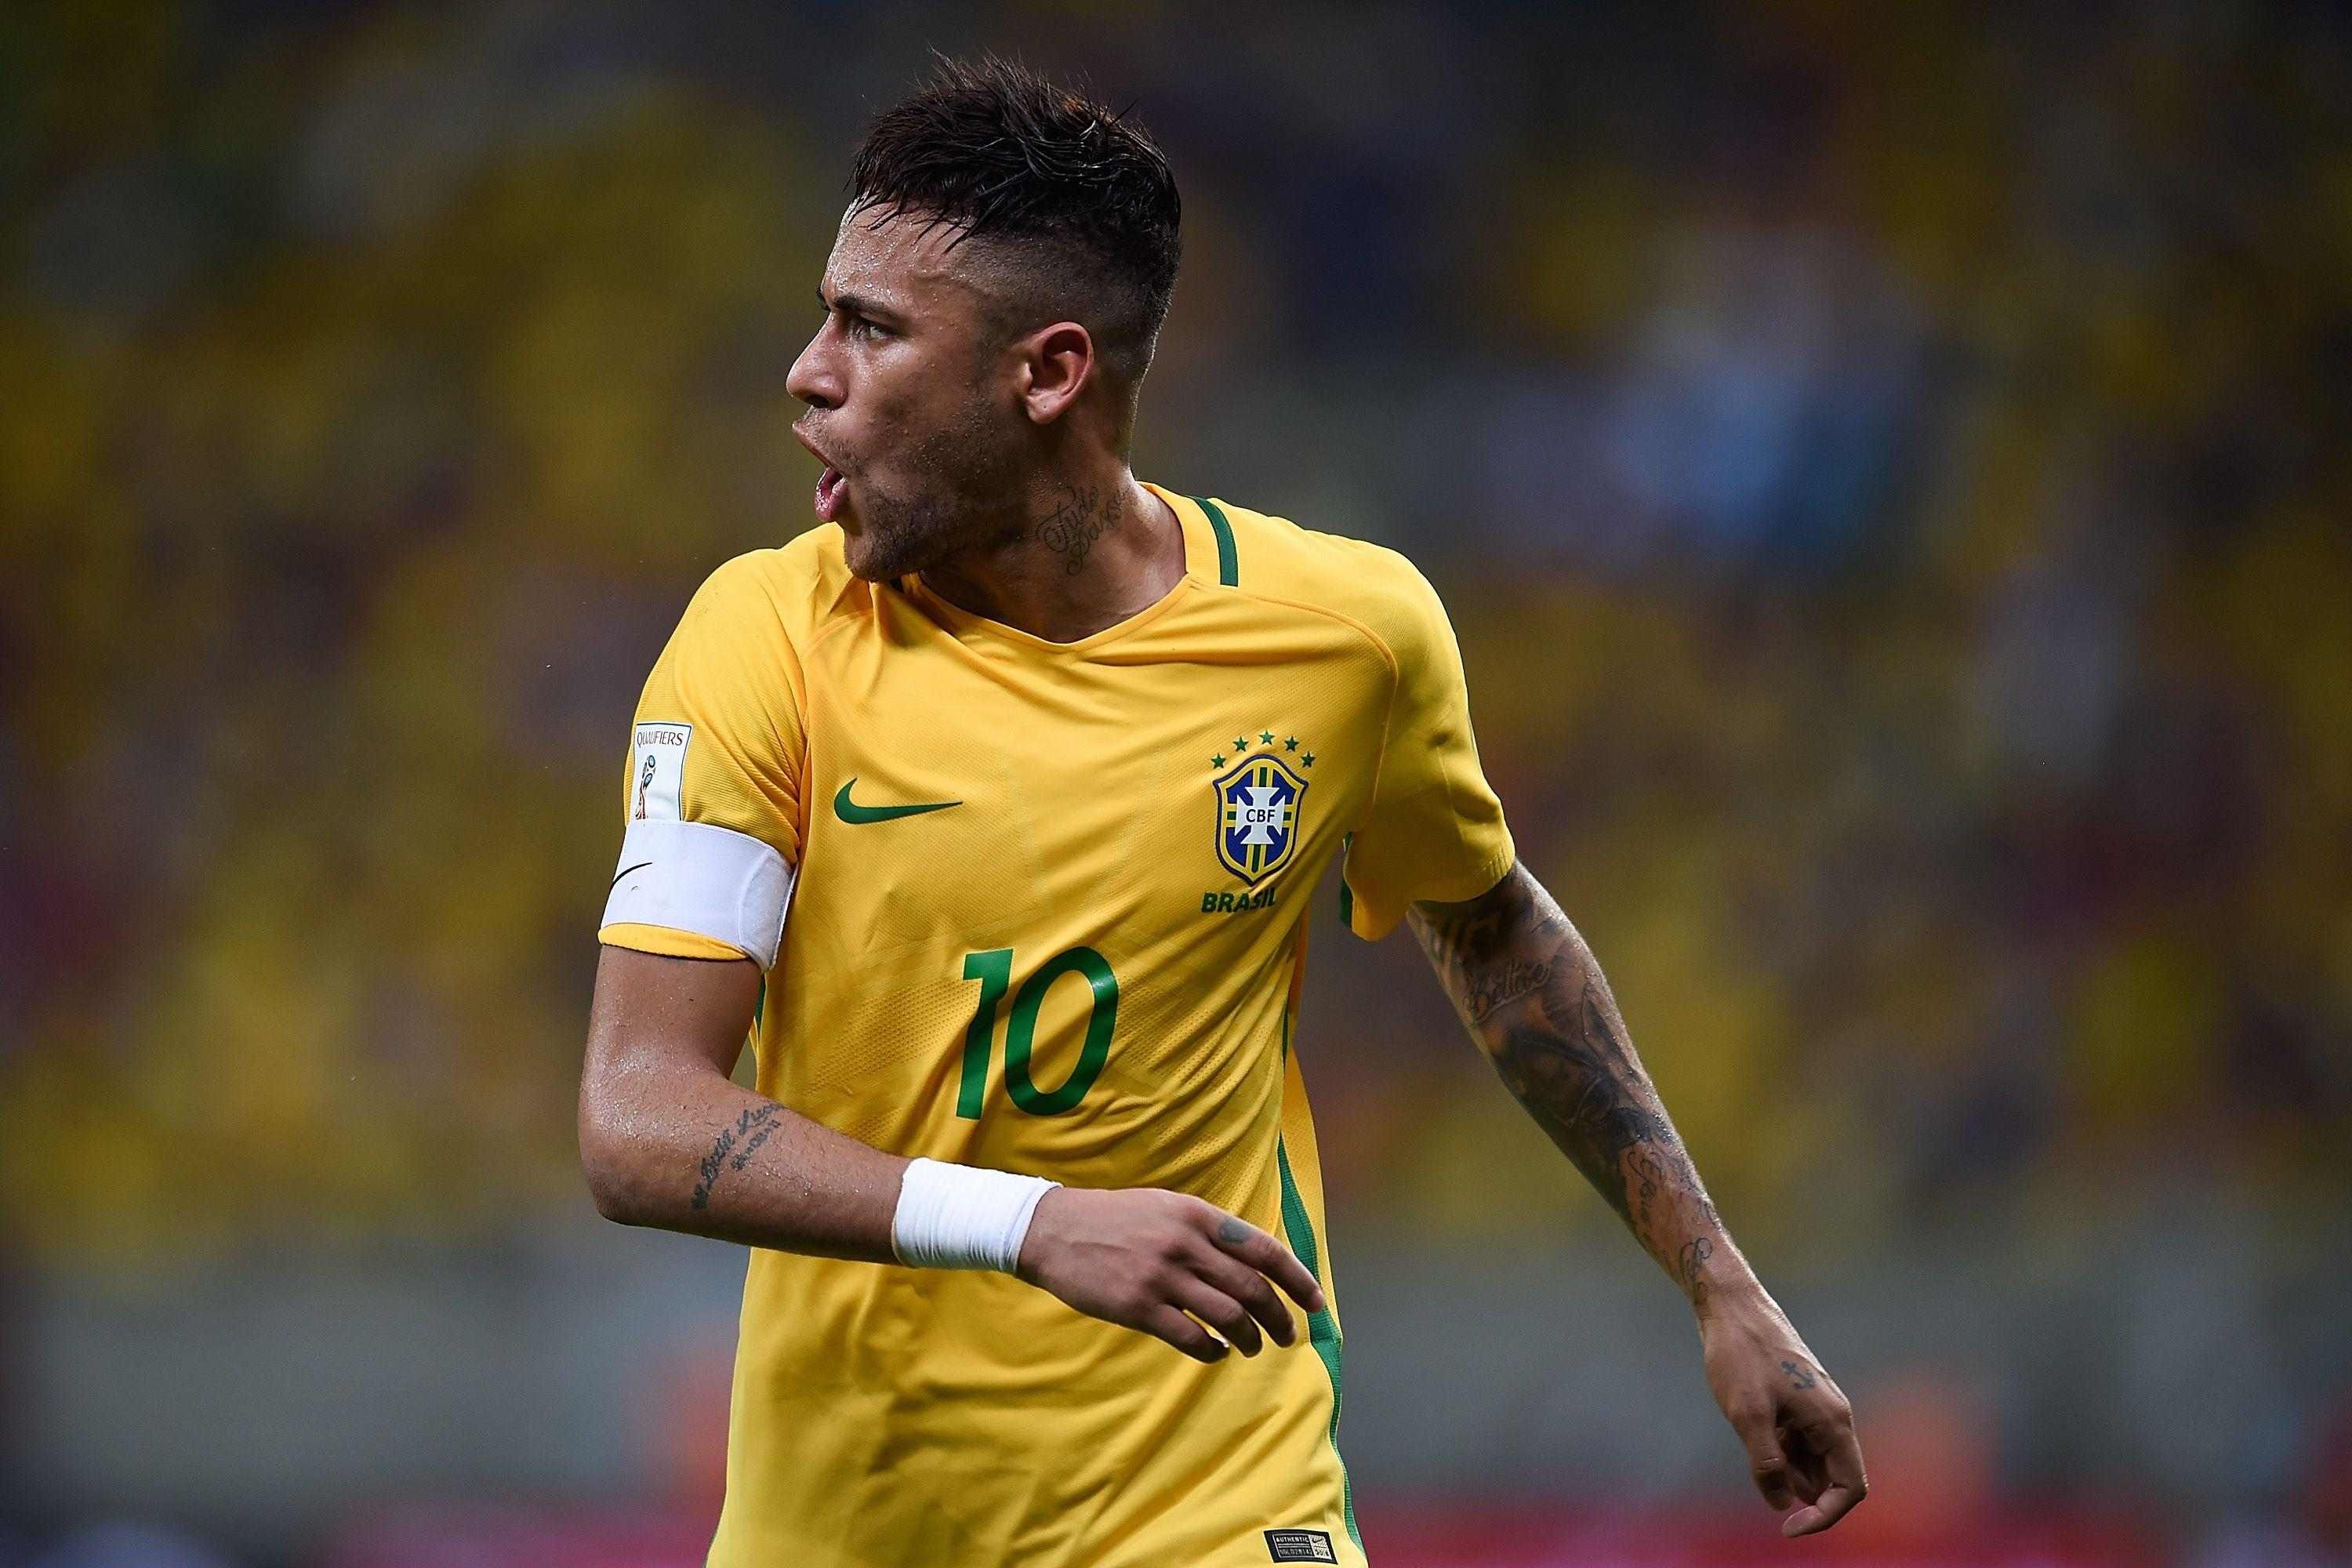 Neymar Brazil Wallpapers 2017 - Wallpaper Cave